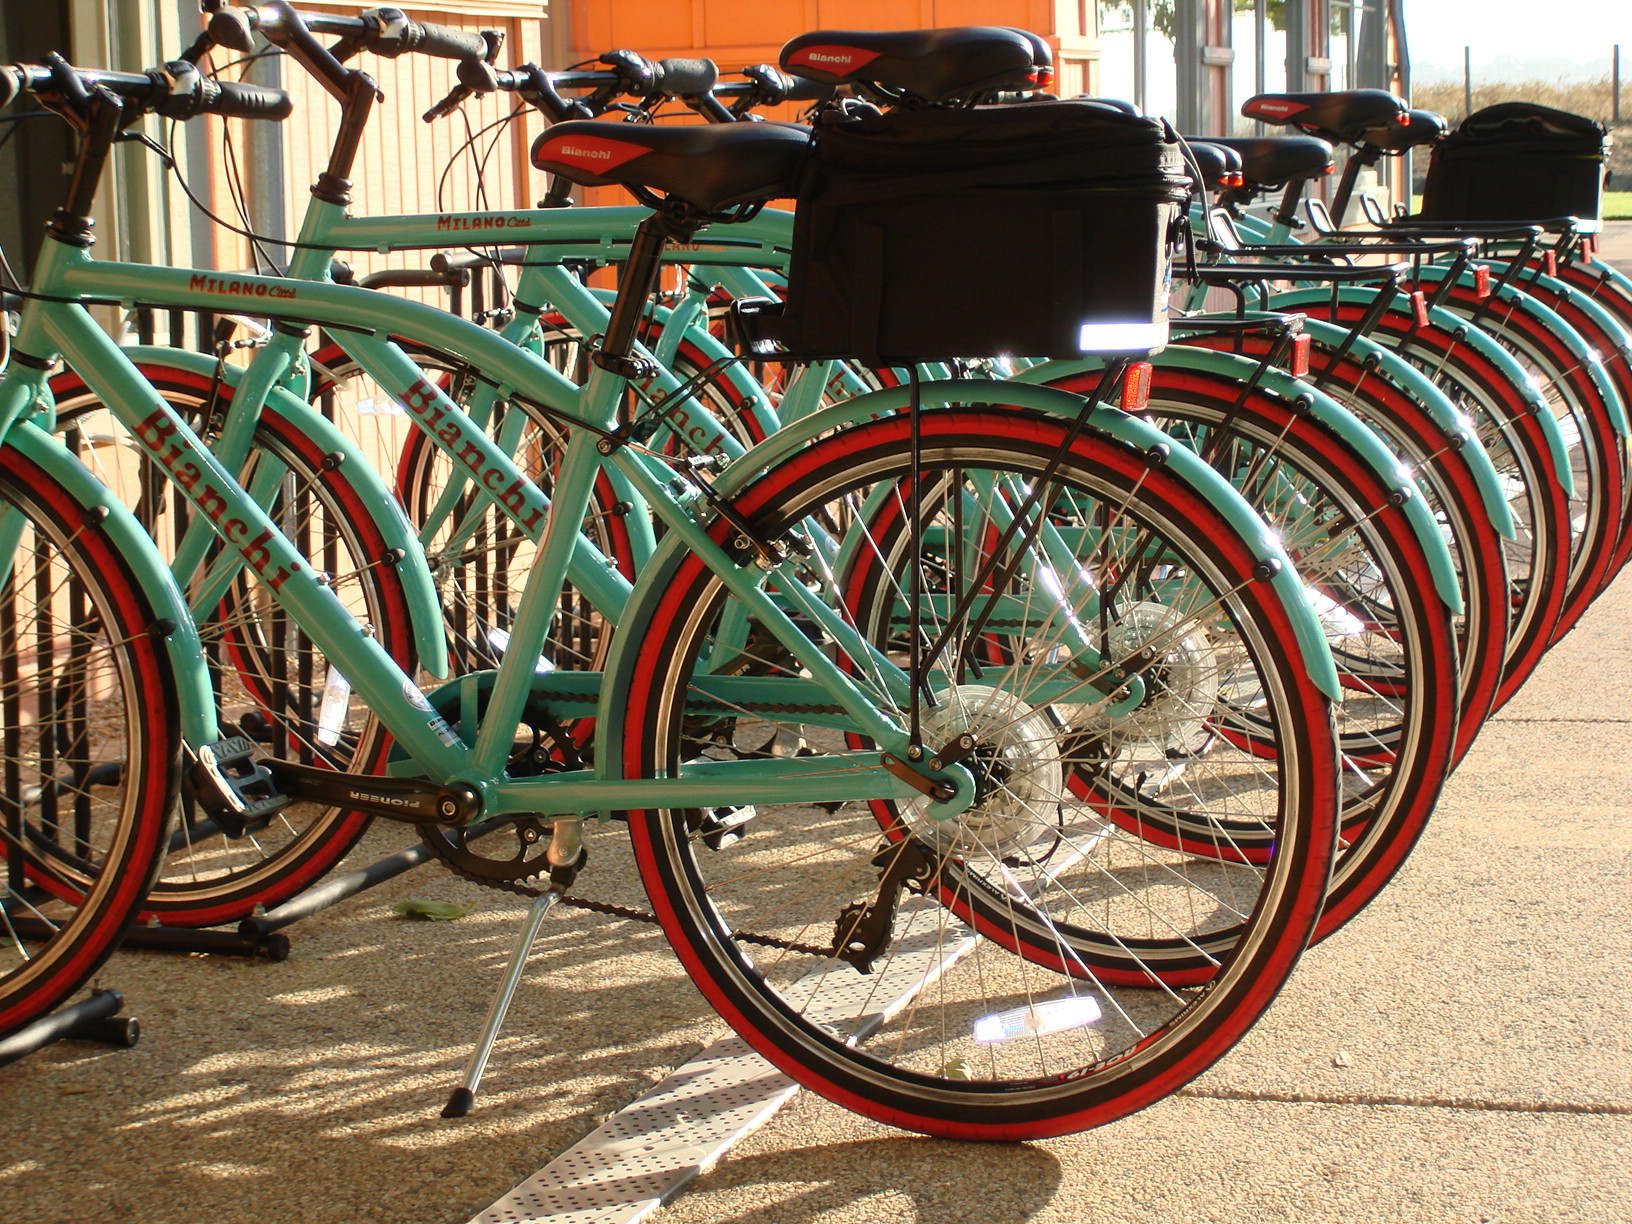 Bianchi Complimentary bikes